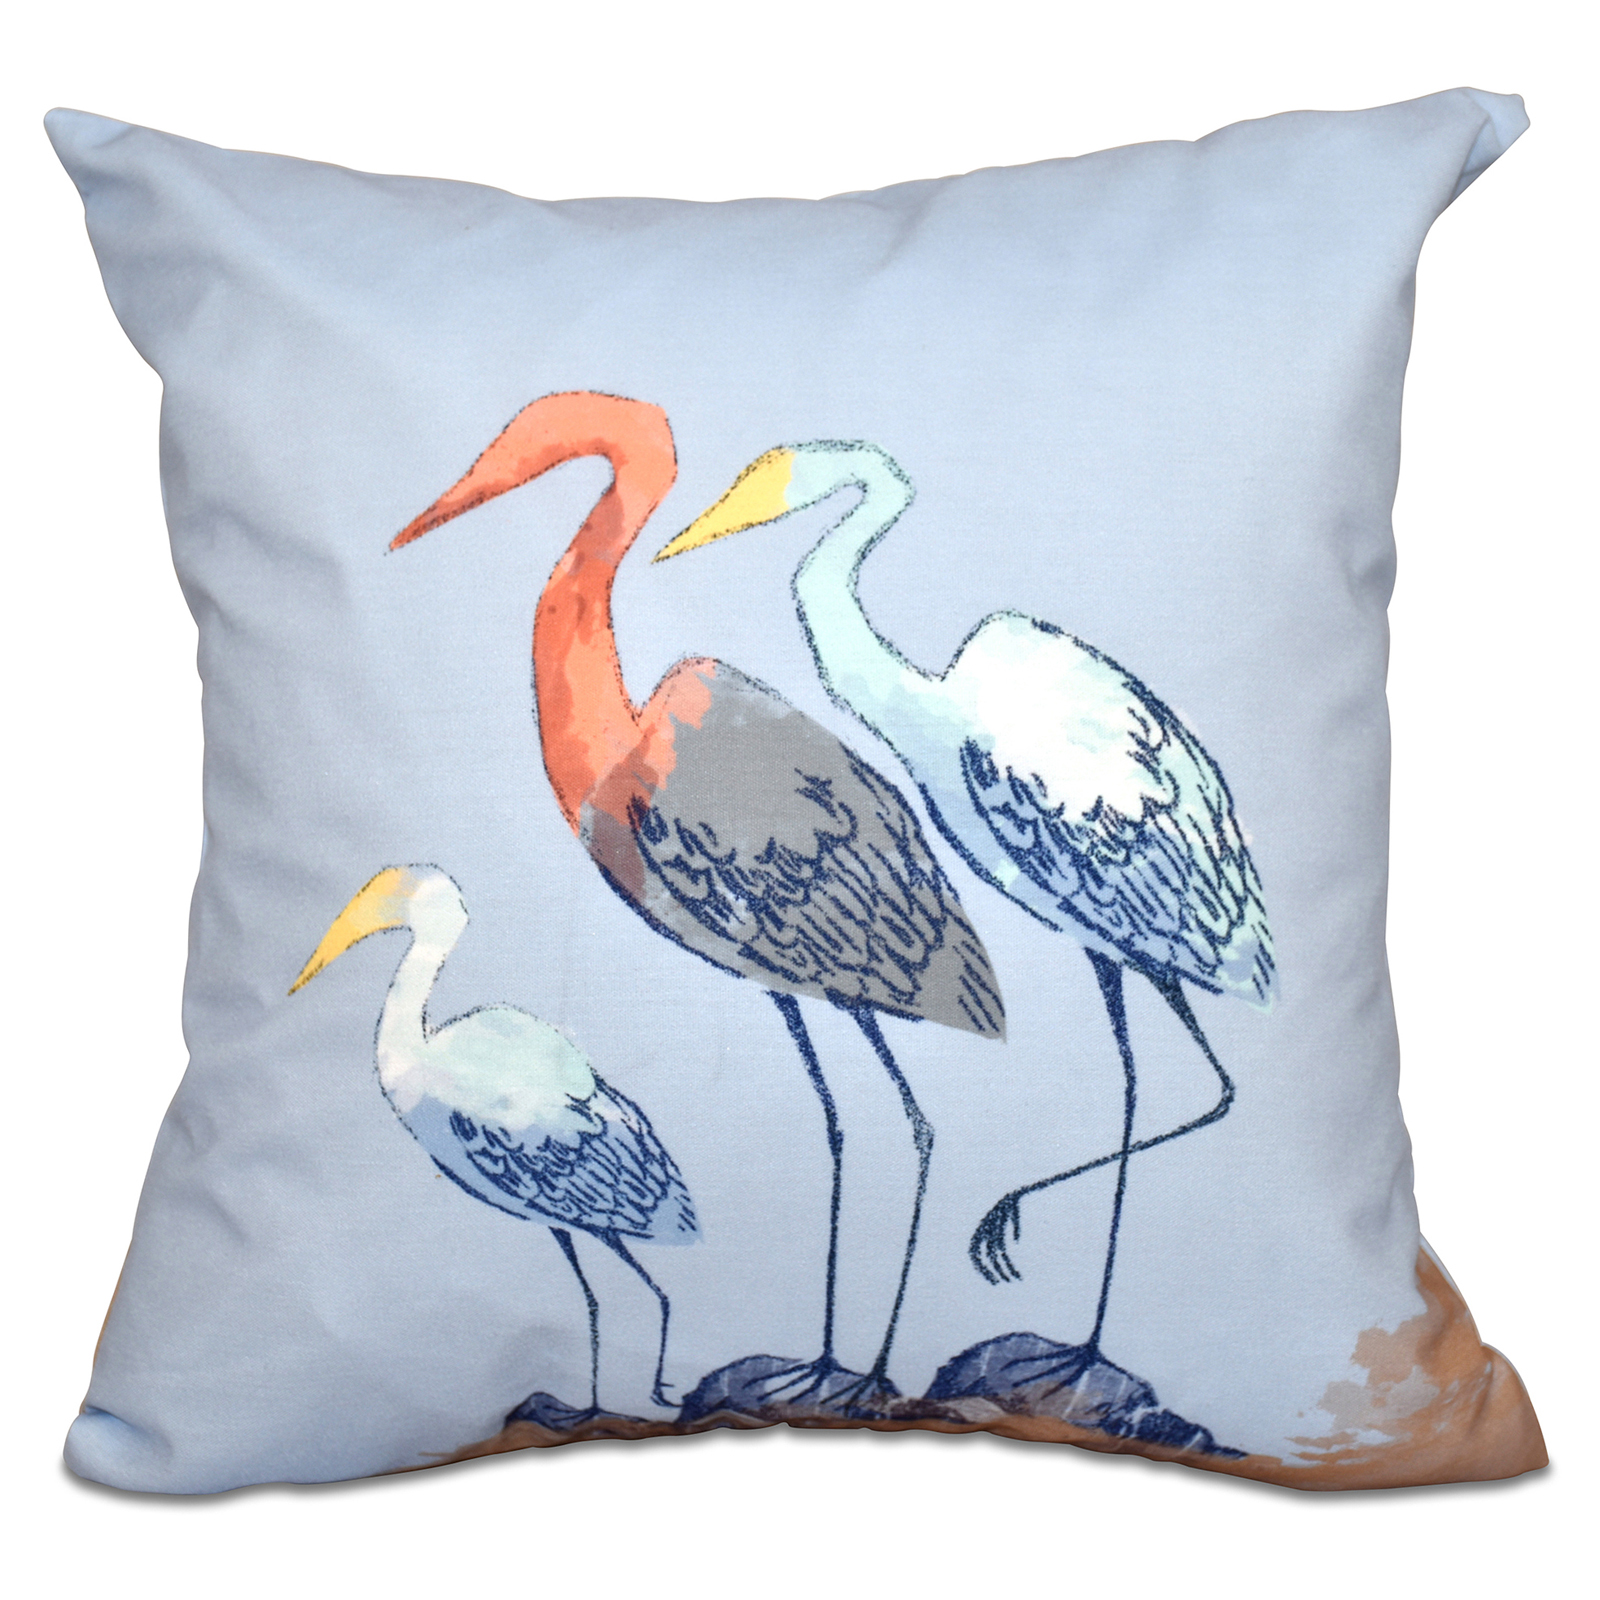 Inexpensive Beach Throw Pillows : E by Design Beach Vacation Sunbathers Decorative Pillow - Decorative Pillows at Hayneedle